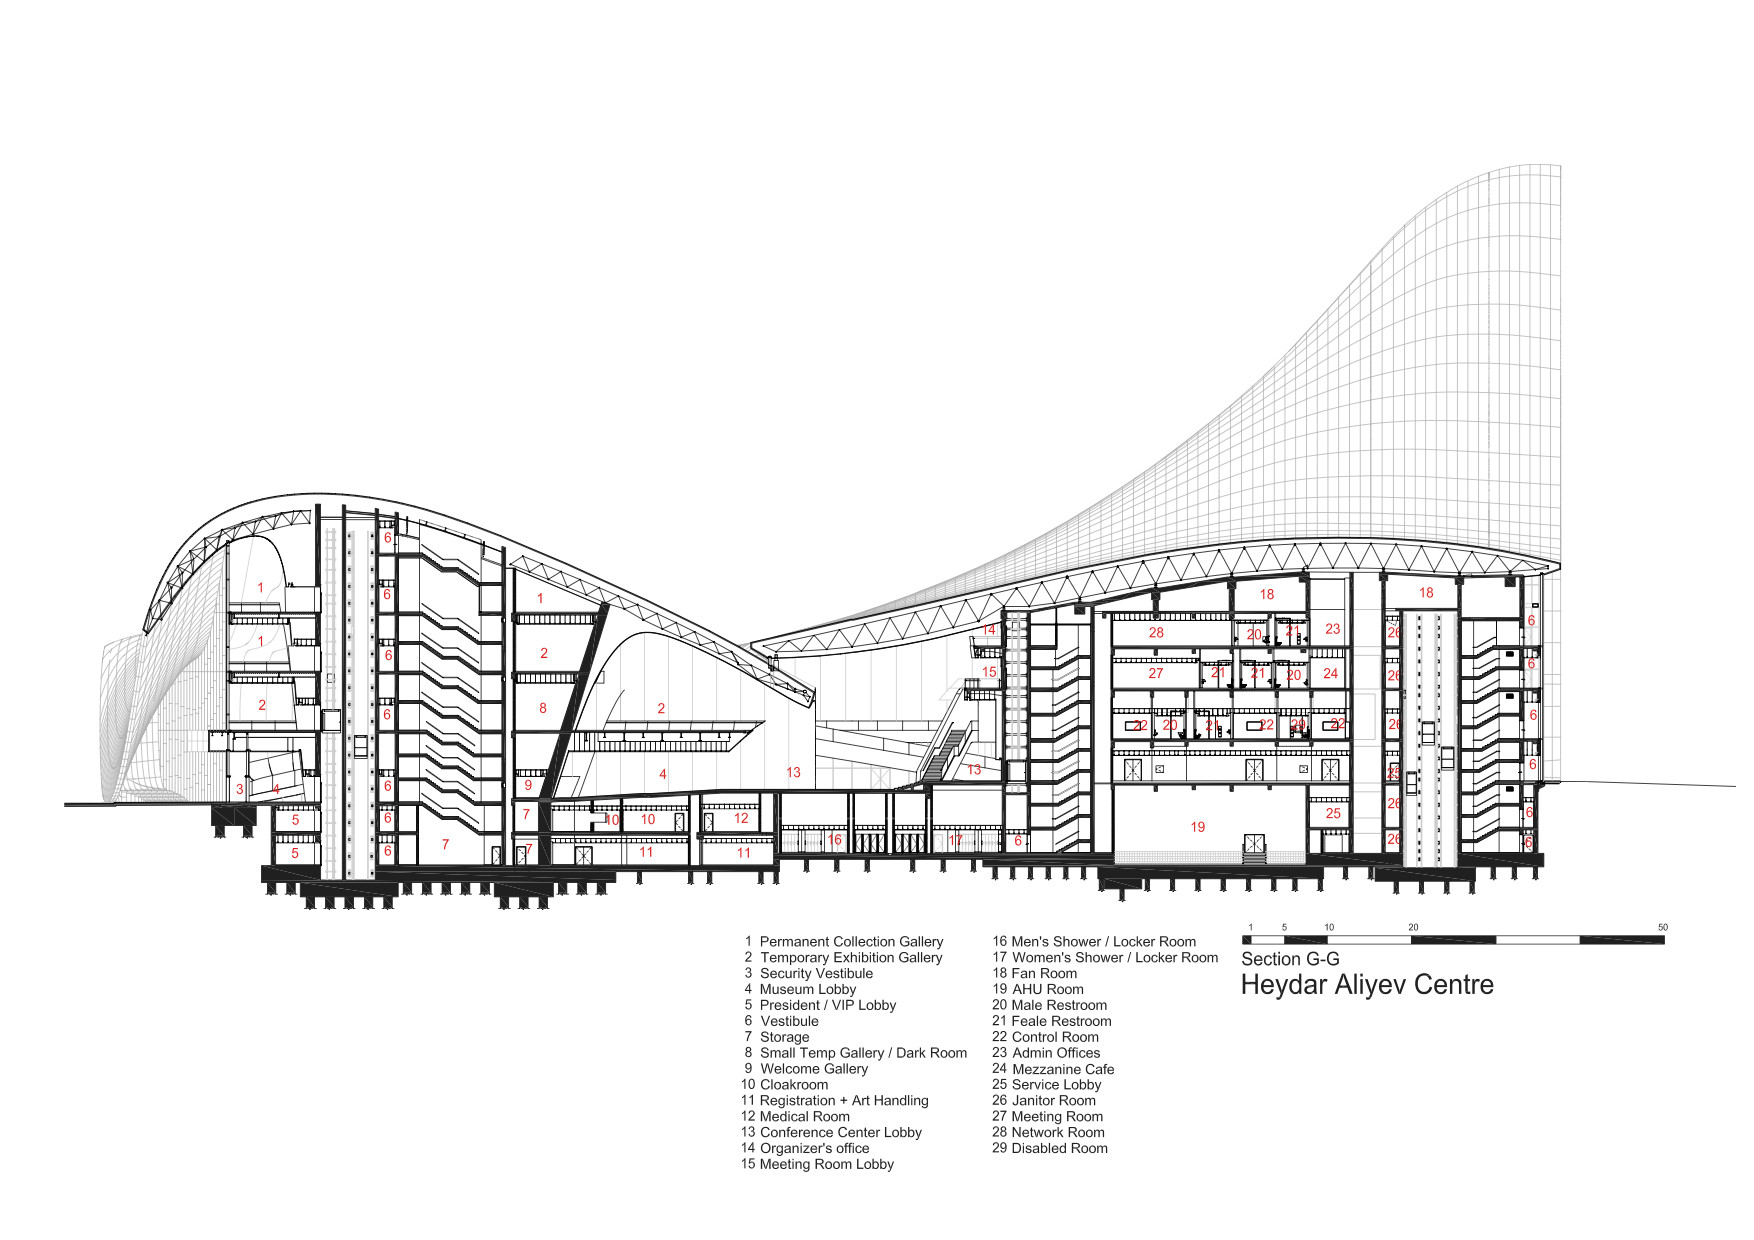 53324f6cc07a806c3600008a Centre Pompidou Metz Shigeru Ban Architects Section besides 52852691e8e44e2225000154 Heydar Aliyev Center Zaha Hadid Architects Section G G furthermore Roof Design 3 together with Royalty Free Stock Images St Basil Cathedral Red Square Moscow Russia Vector Illustration Isolated White Background Russian Ancient City View Cityscape Image36136689 further Roof Truss Designs. on cathedral house plans